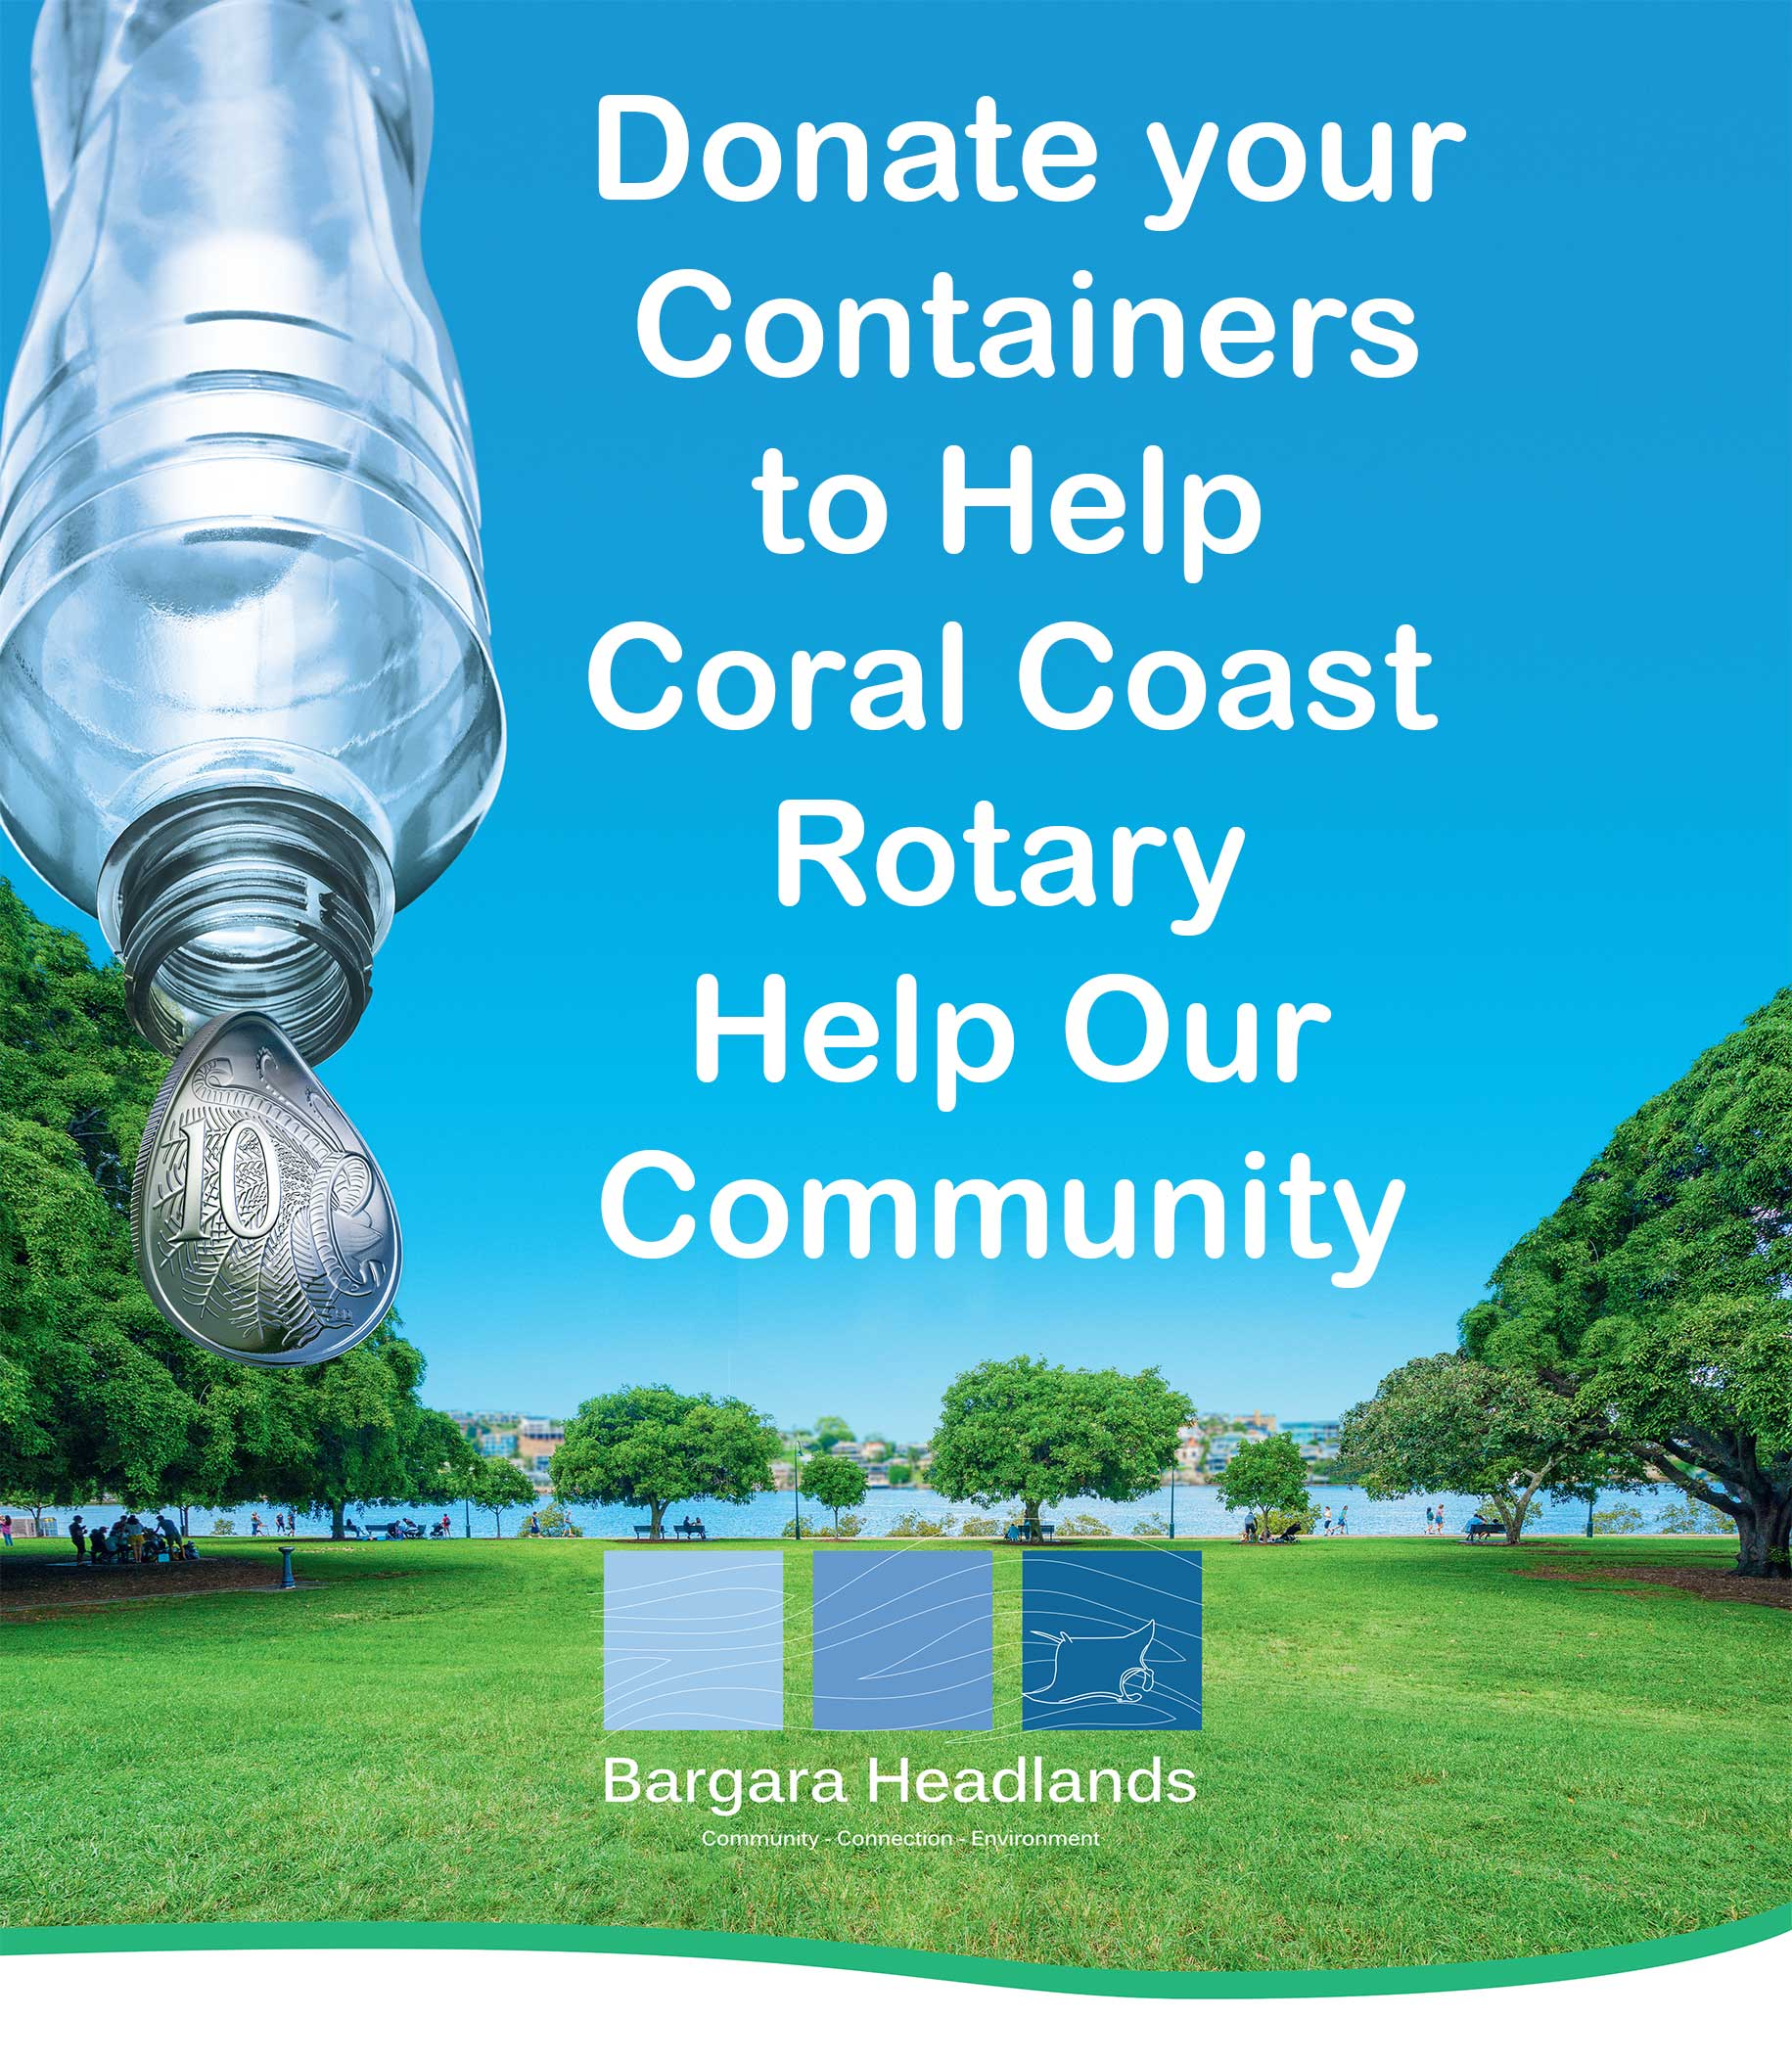 Containers 4 Change - Coral Coast Rotary